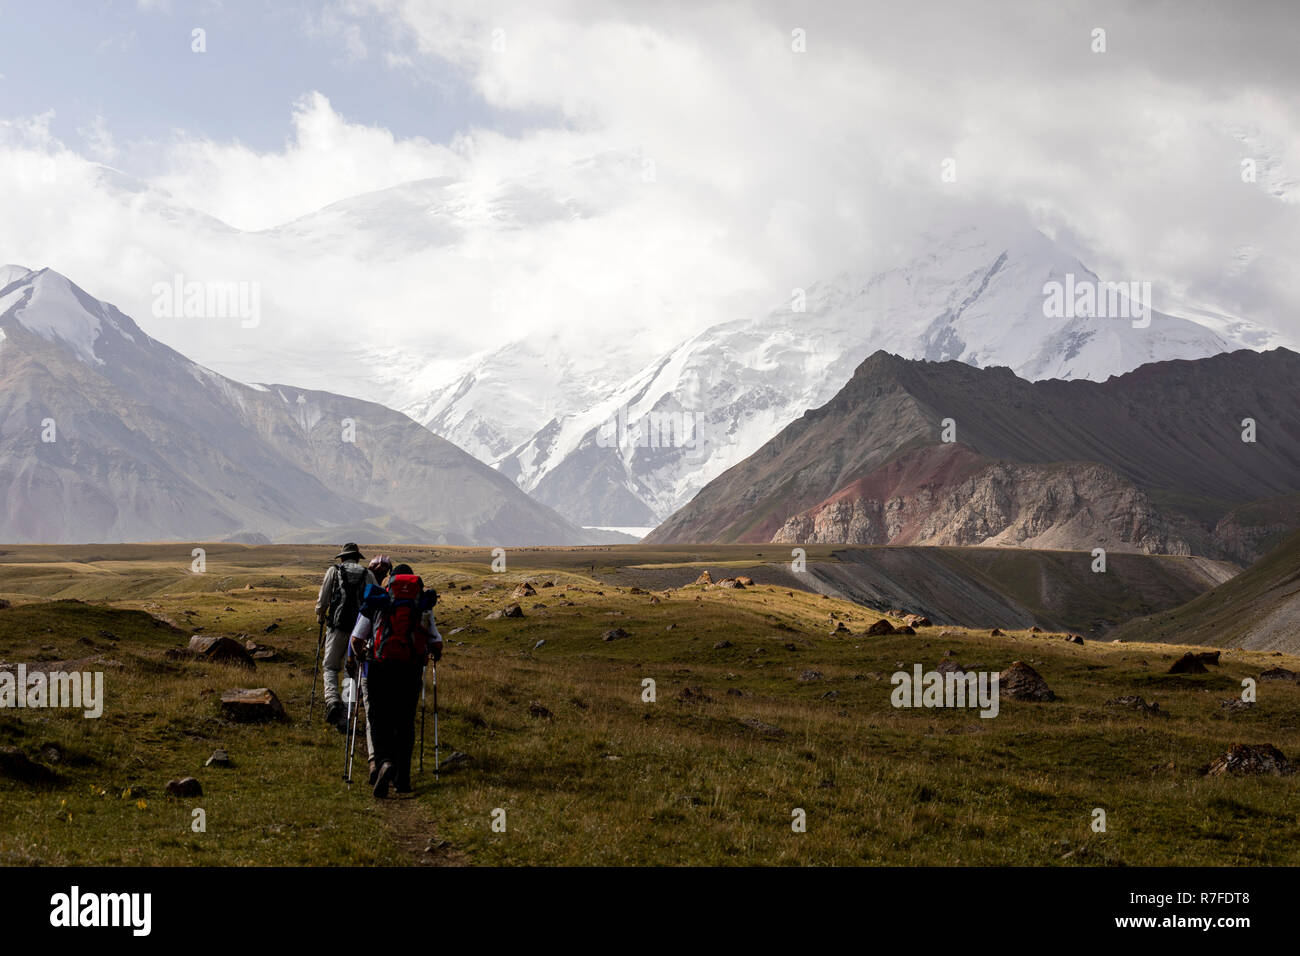 Tulpar, Kyrgyzstan August 21 2018: Tourists walk to base camp at the foot of Peak Lenin in Kyrgyzstan Stock Photo